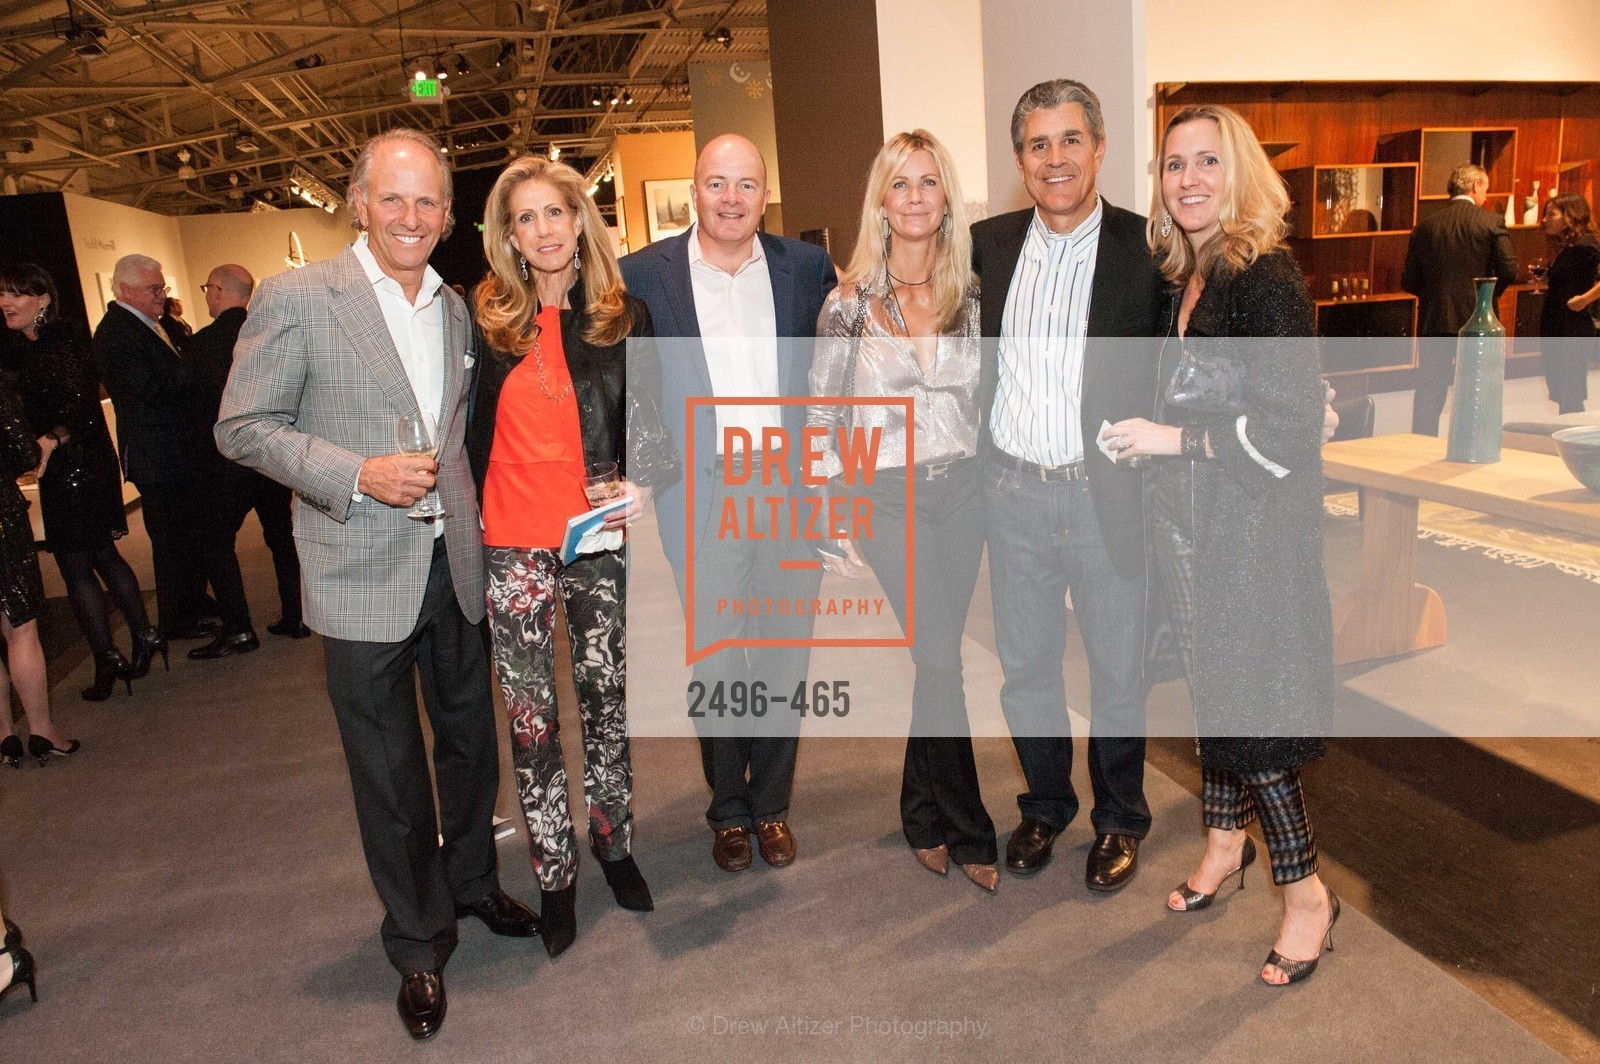 Joe Felson, Sherry Felson, Chris Watson, Camilla Soghikian, Shahan Soghikian, Maria Watson, FOG Design + Art Preview Gala, US. US, January 16th, 2014,Drew Altizer, Drew Altizer Photography, full-service agency, private events, San Francisco photographer, photographer california